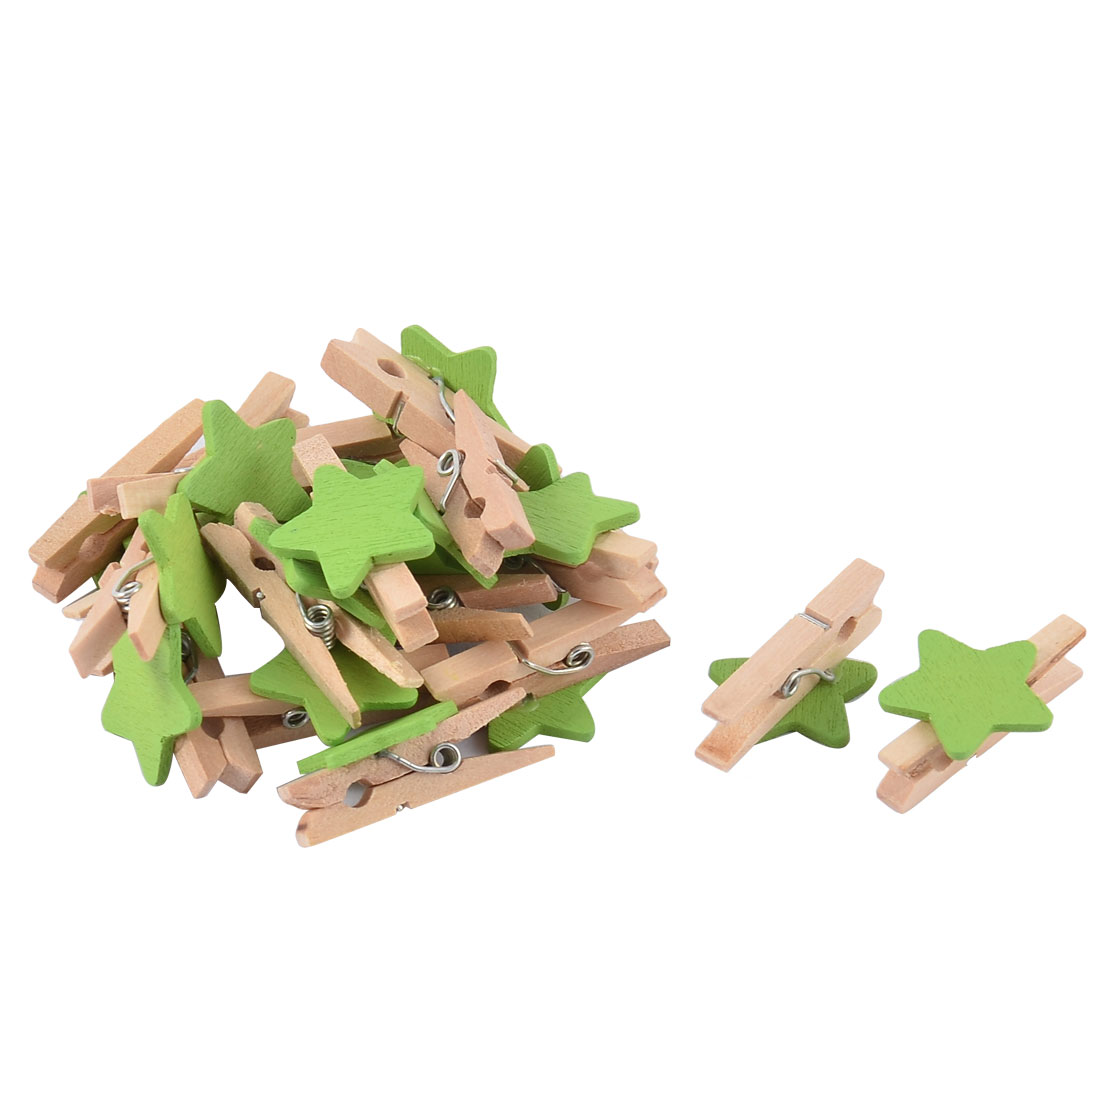 Star Shaped Card Holder Photo Spring Pegs Tiny Mini Wooden Clip Green 20pcs